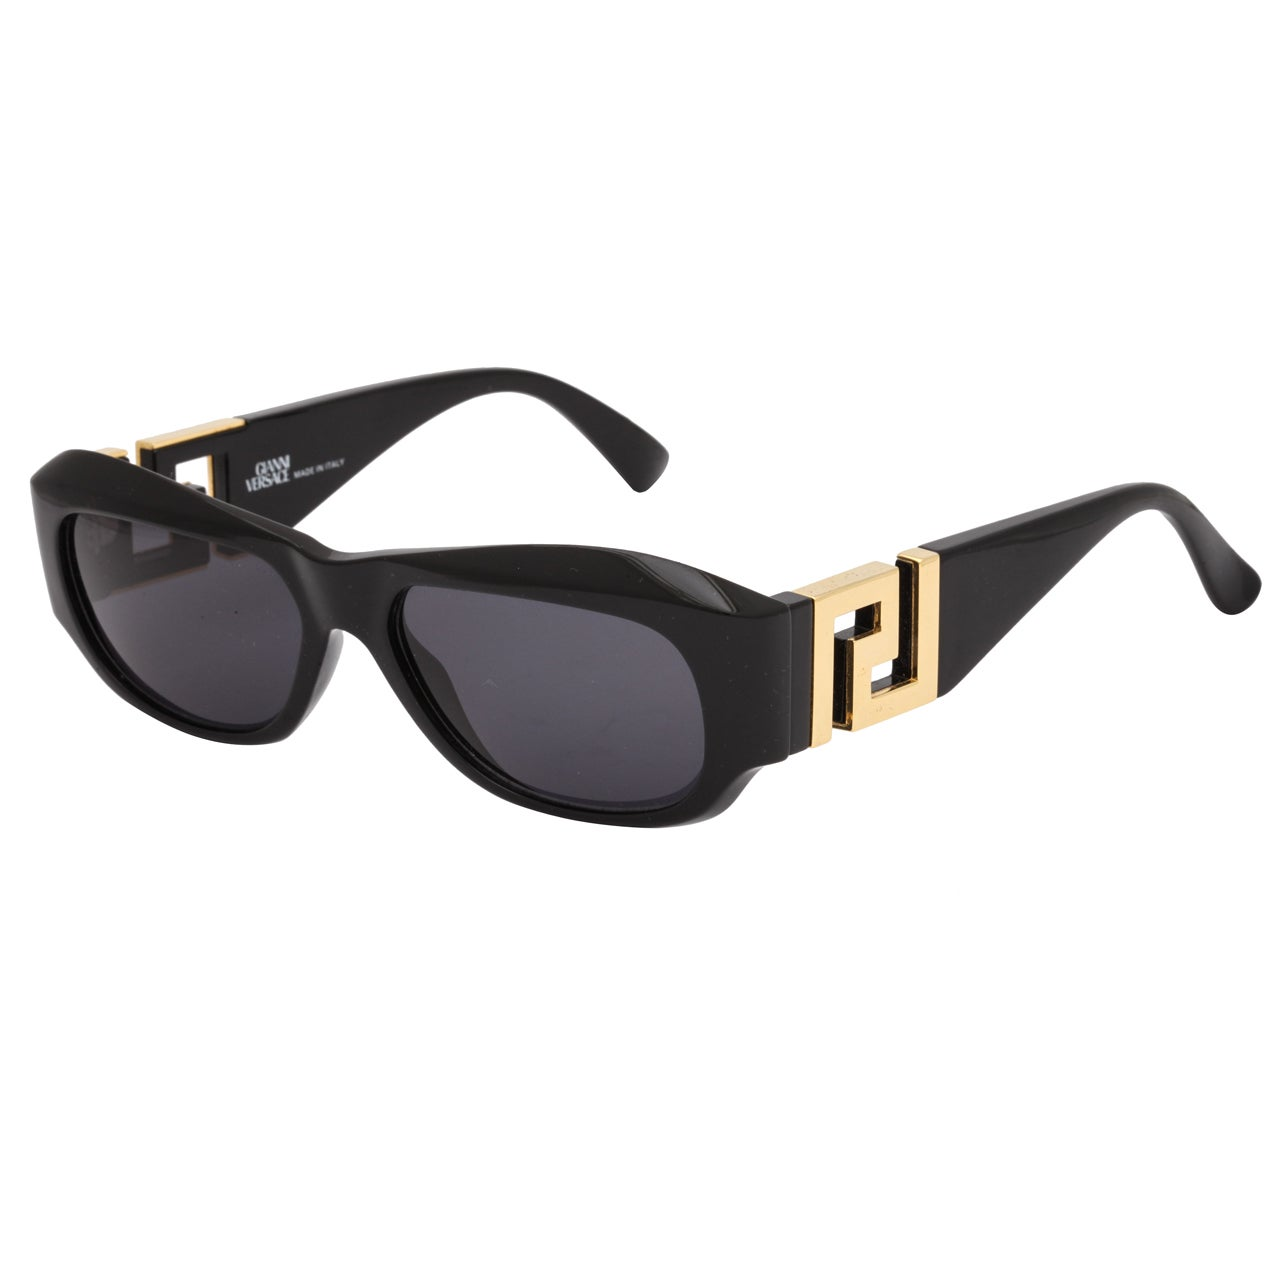 Gianni Versace Sunglasses Mod T75 COL 852